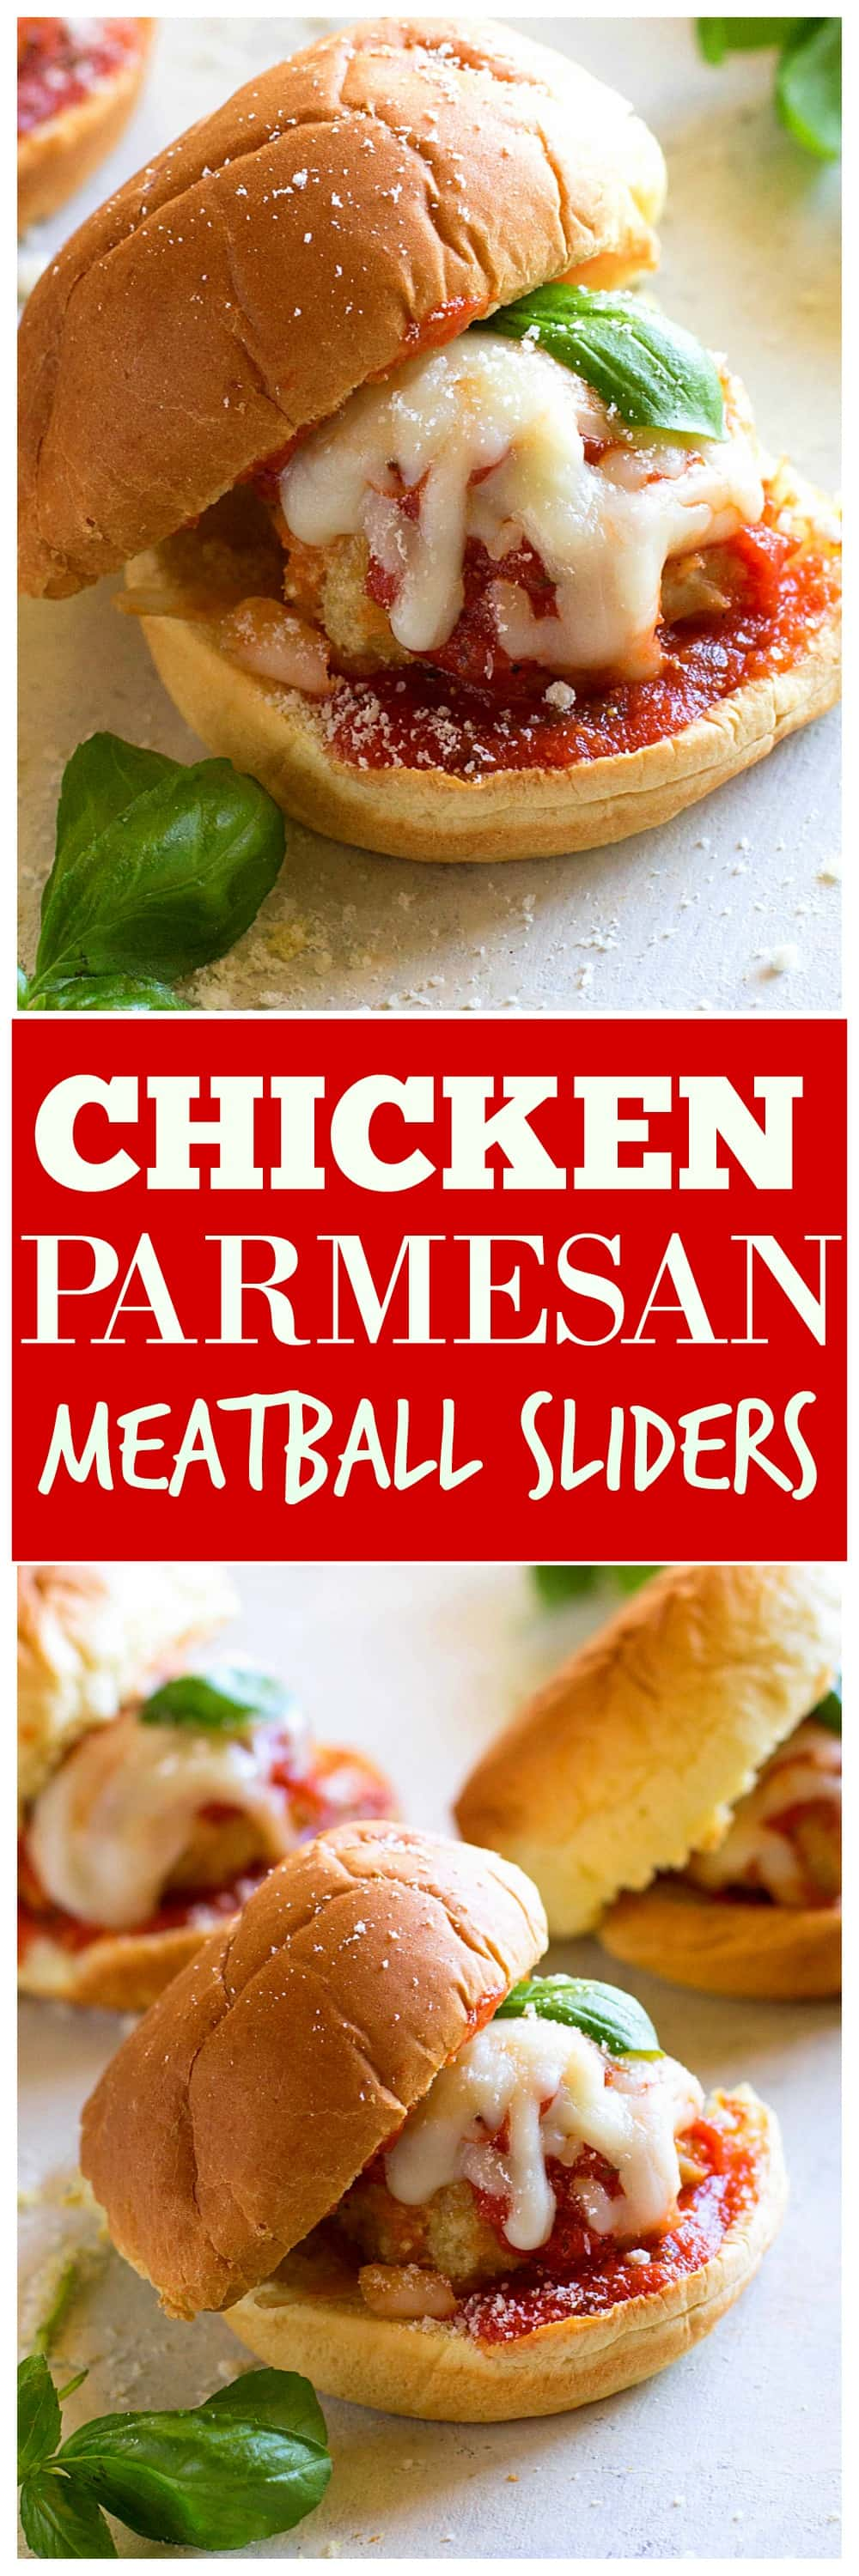 Chicken Parmesan Meatball Sliders - so easy and always a crowd pleaser. the-girl-who-ate-everything.com